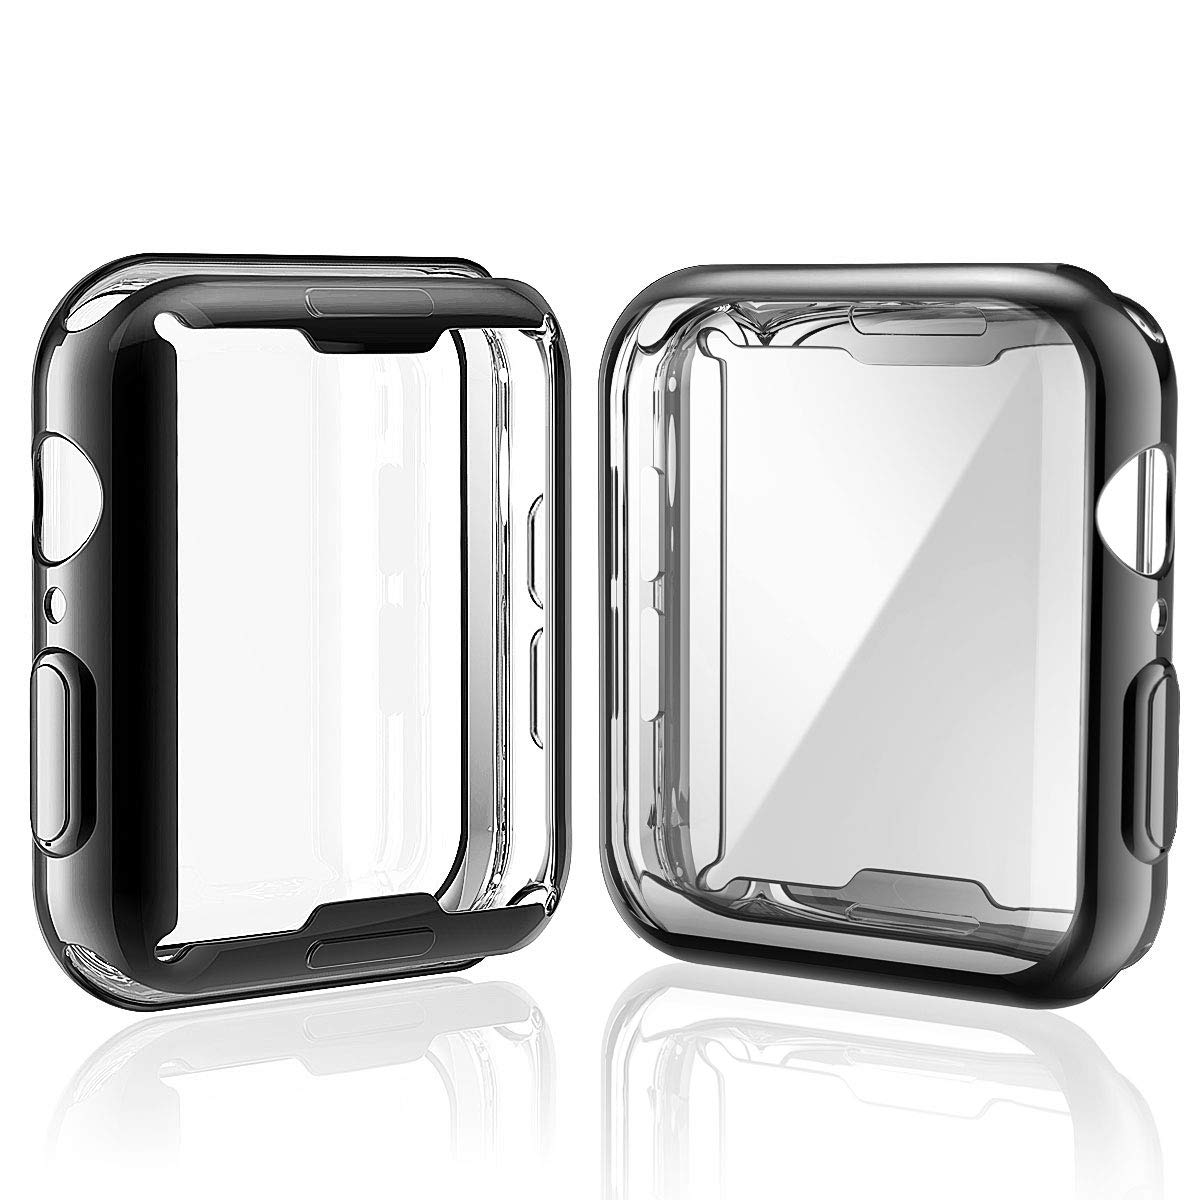 [2-Pack] Julk Case for Apple Watch Series 4 Screen Protector 44mm, 2018 New iWatch Overall Protective Case TPU HD Black Ultra-Thin Cover for Apple Watch Series 4 (1 Black+1 Transparent) by Julk